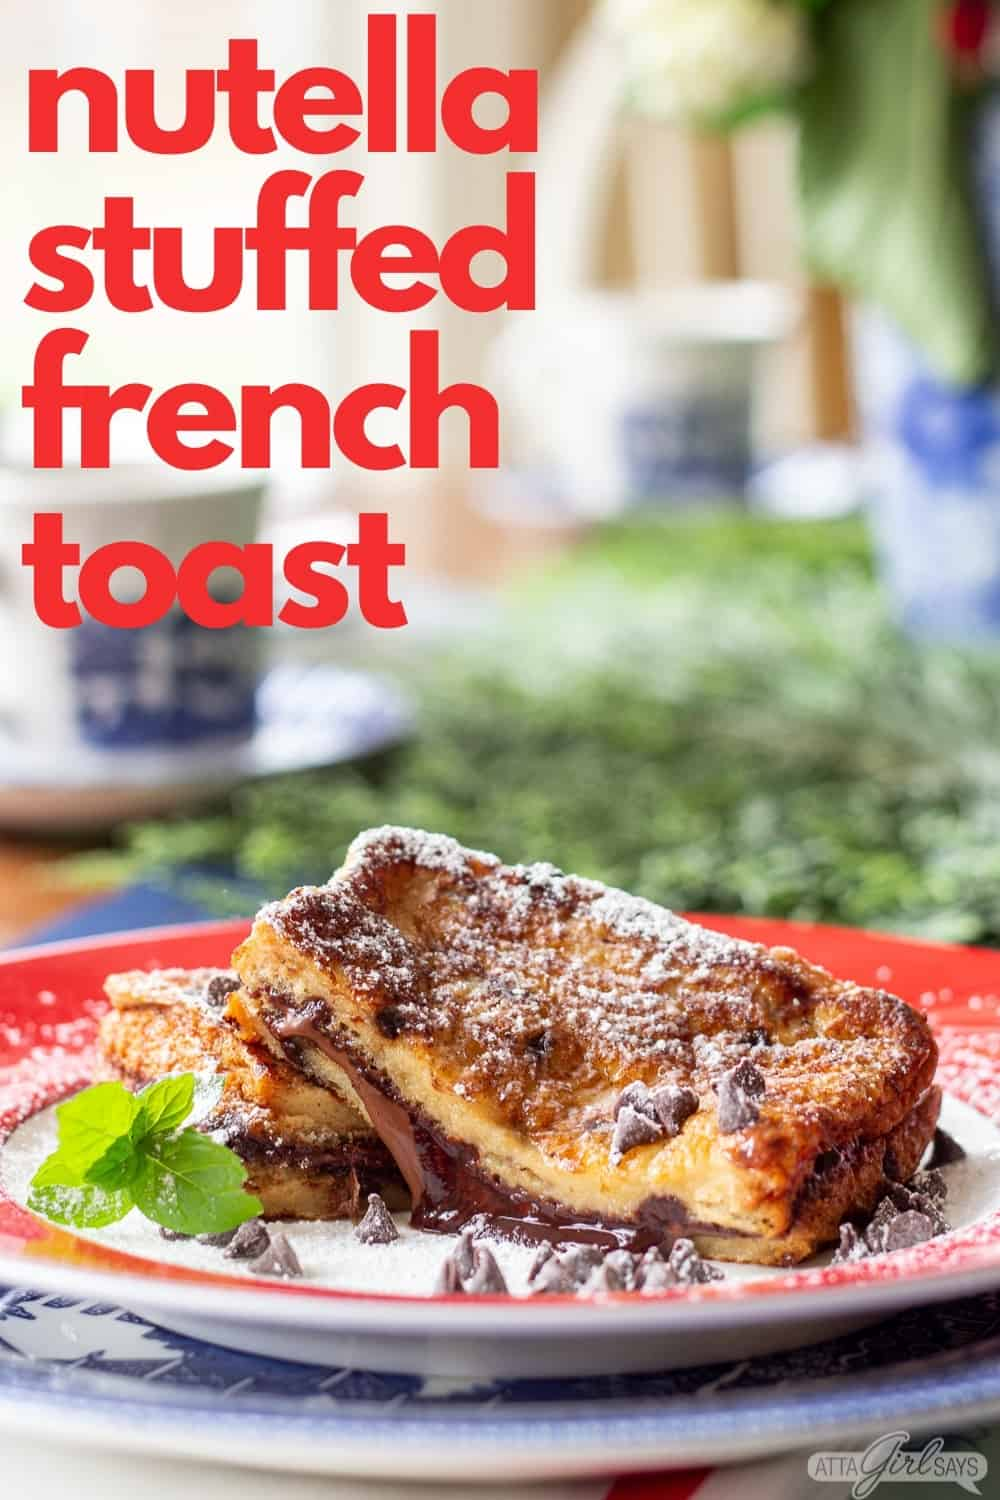 chocolate french toast stuffed with hazelnut spread on a red rimmed plate